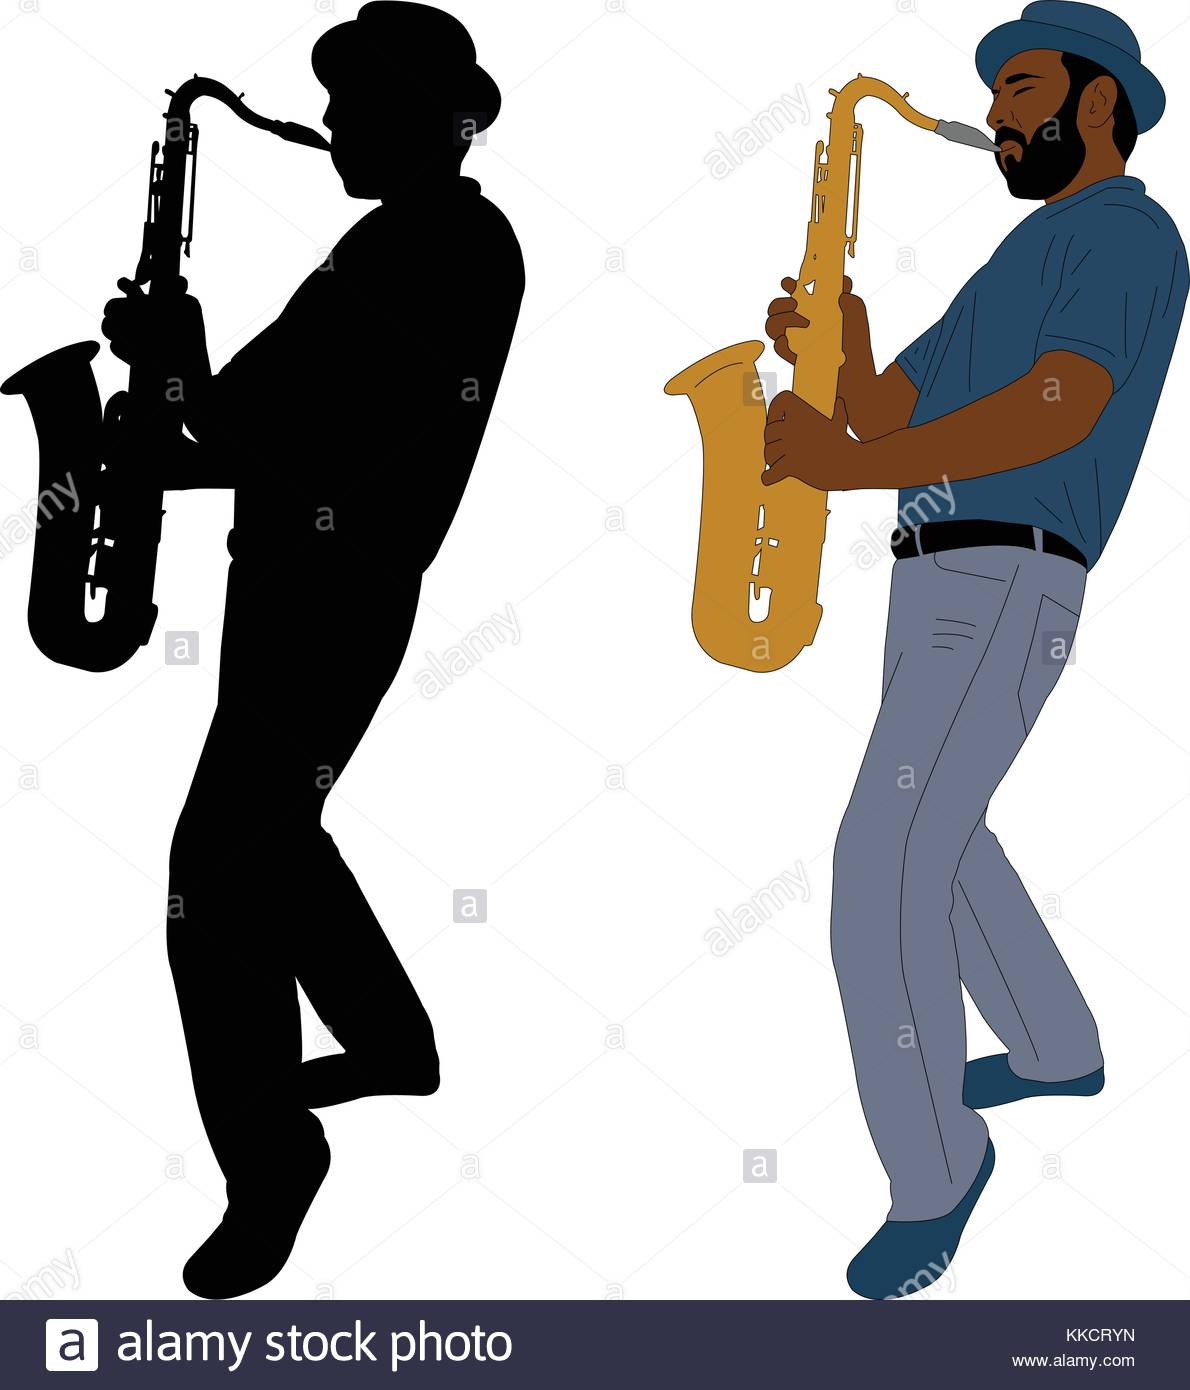 1190x1390 Saxophone Silhouette Stock Vector Images